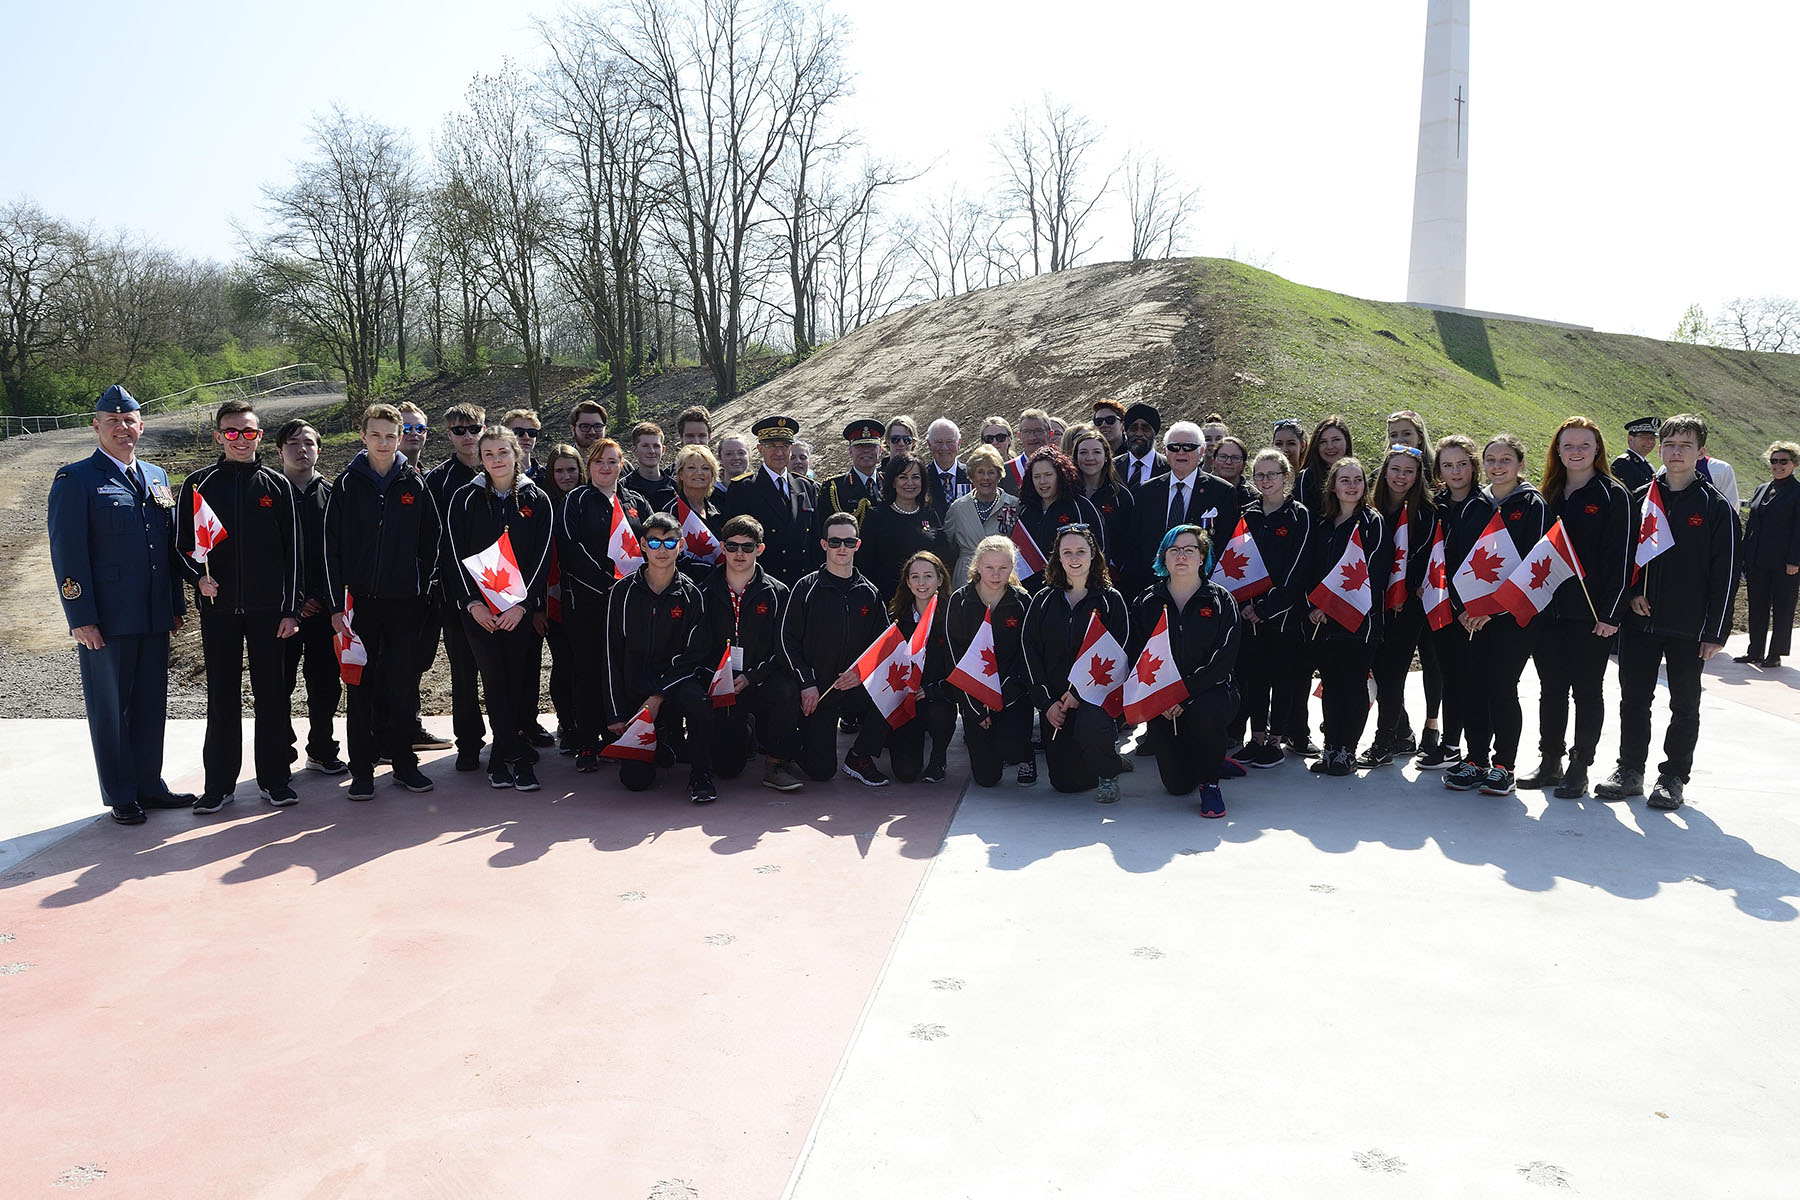 The youth of Canada were represented by students of Napanee District Secondary School, who are charged with carrying forward the story of Hill 70 and of those soldiers who sacrificed so much.